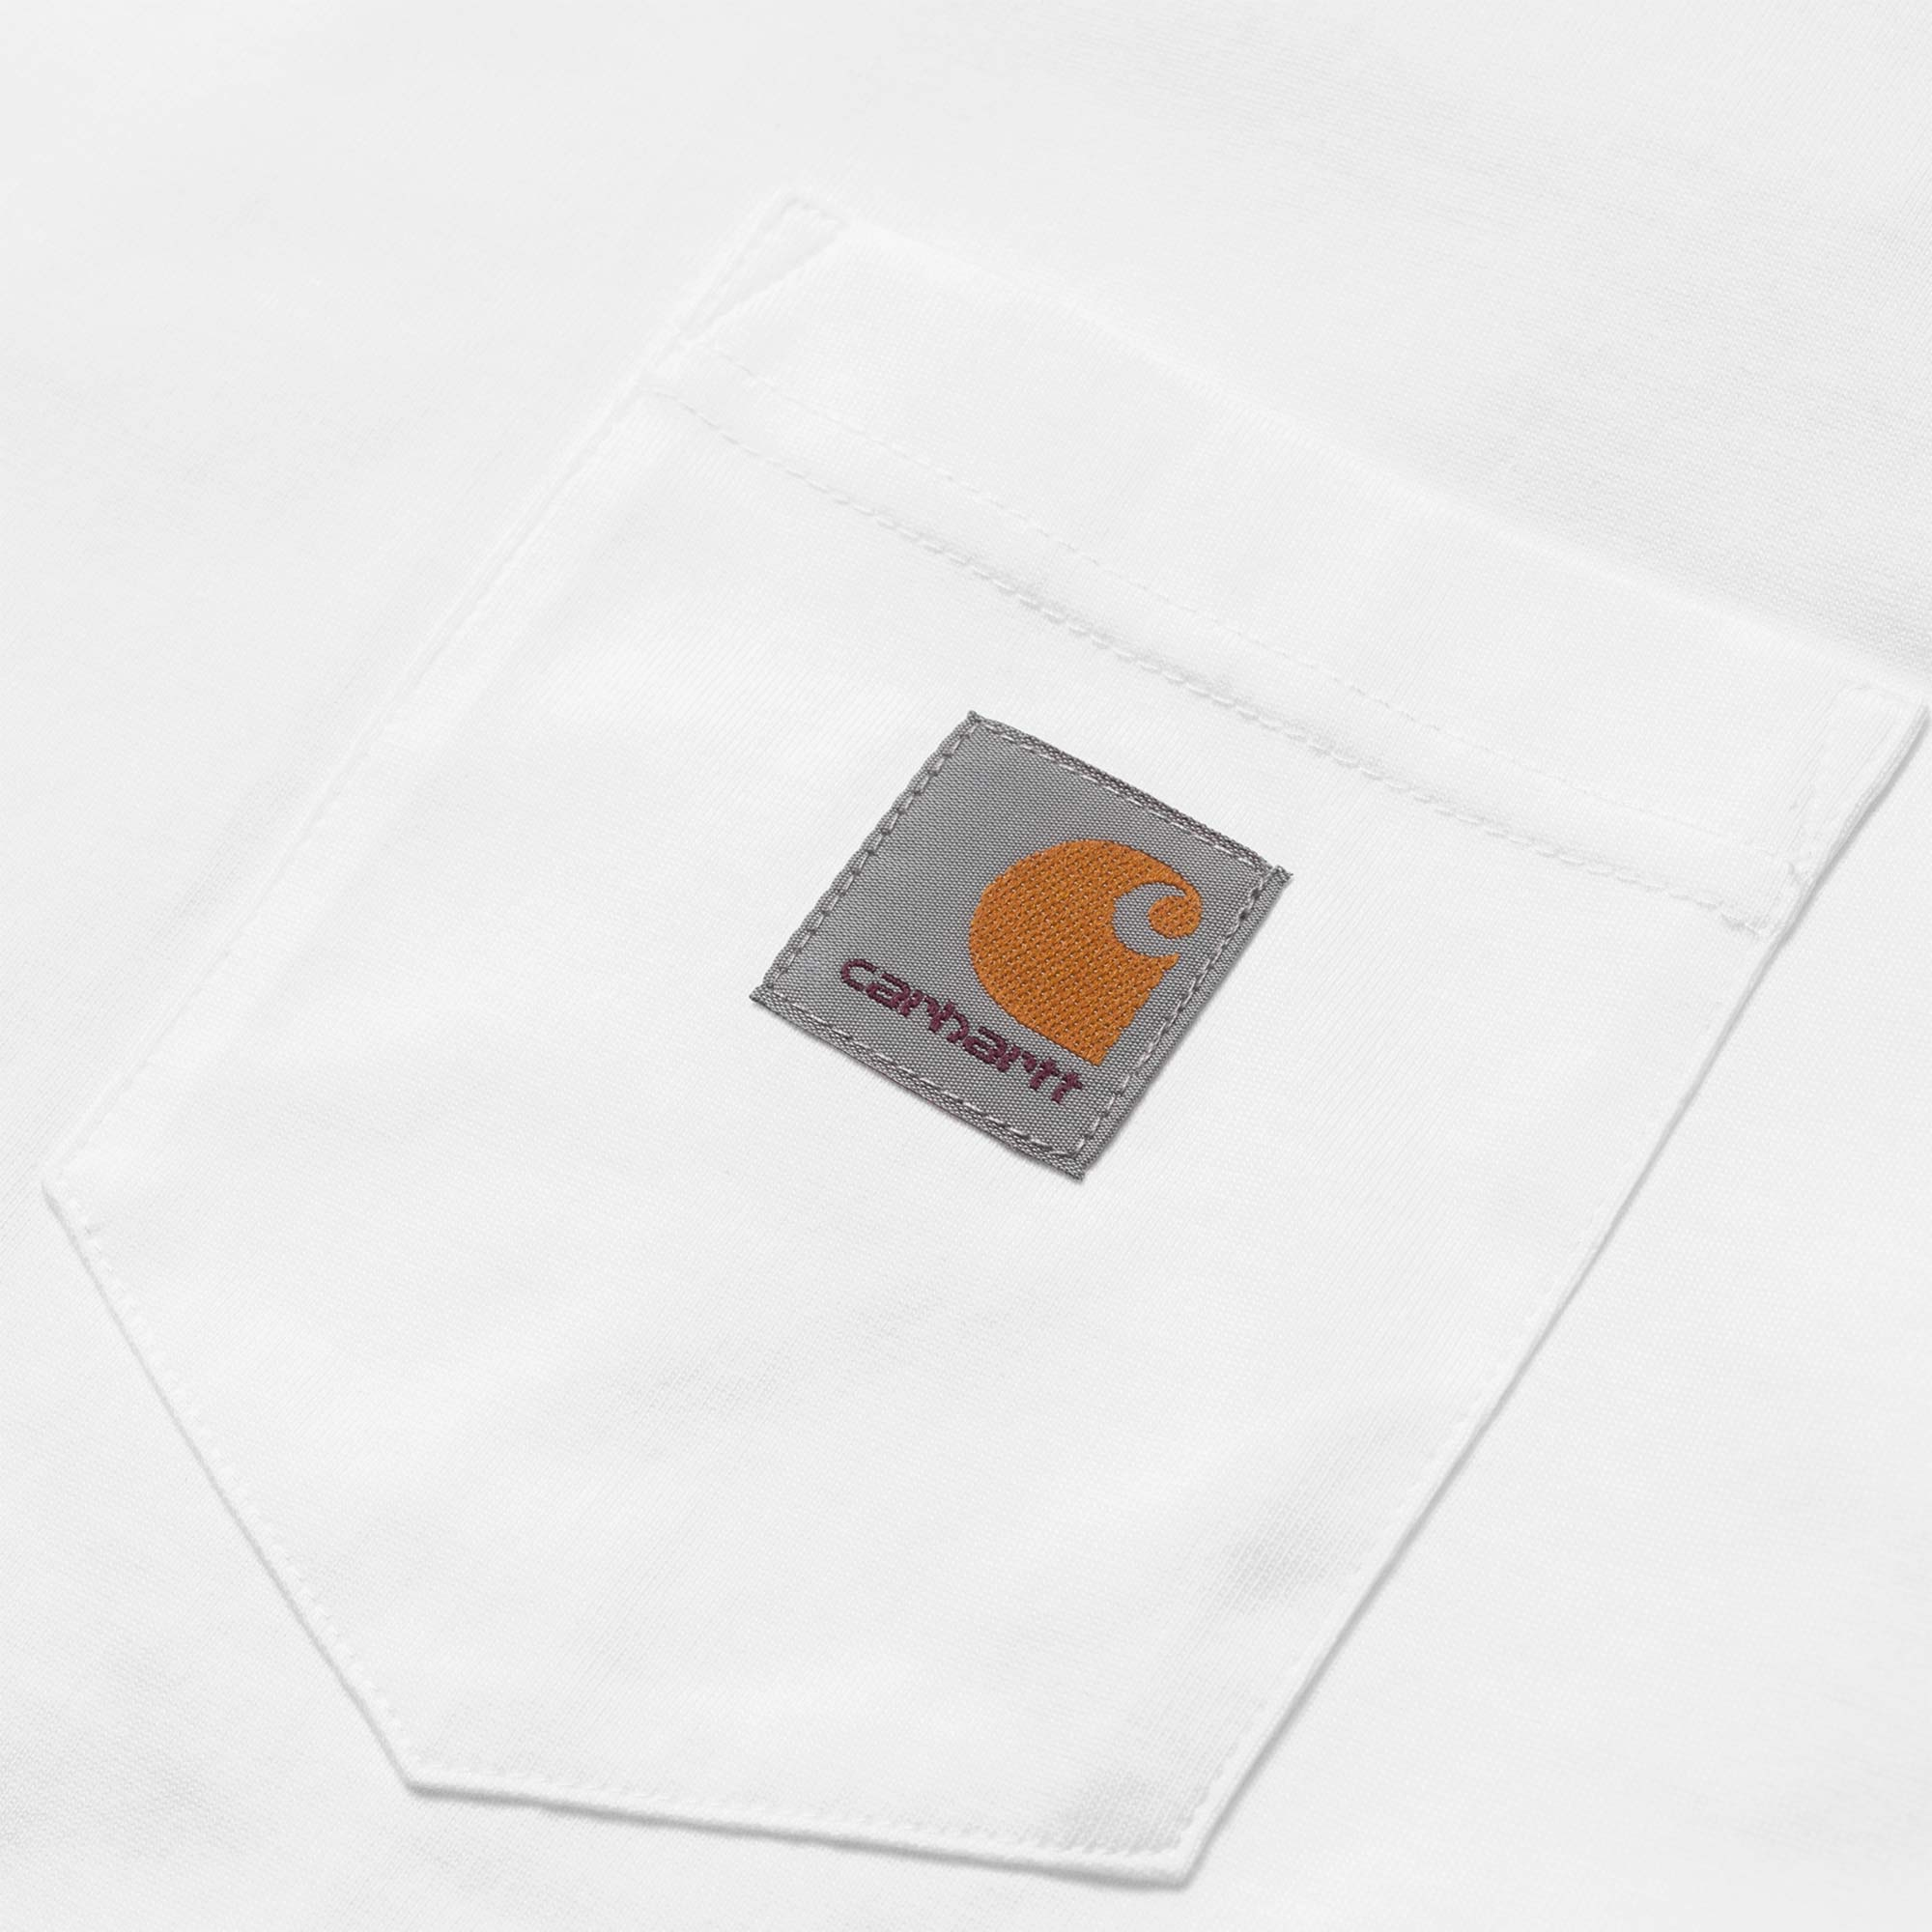 Carhartt WIP S/S Pocket Tee - White 2